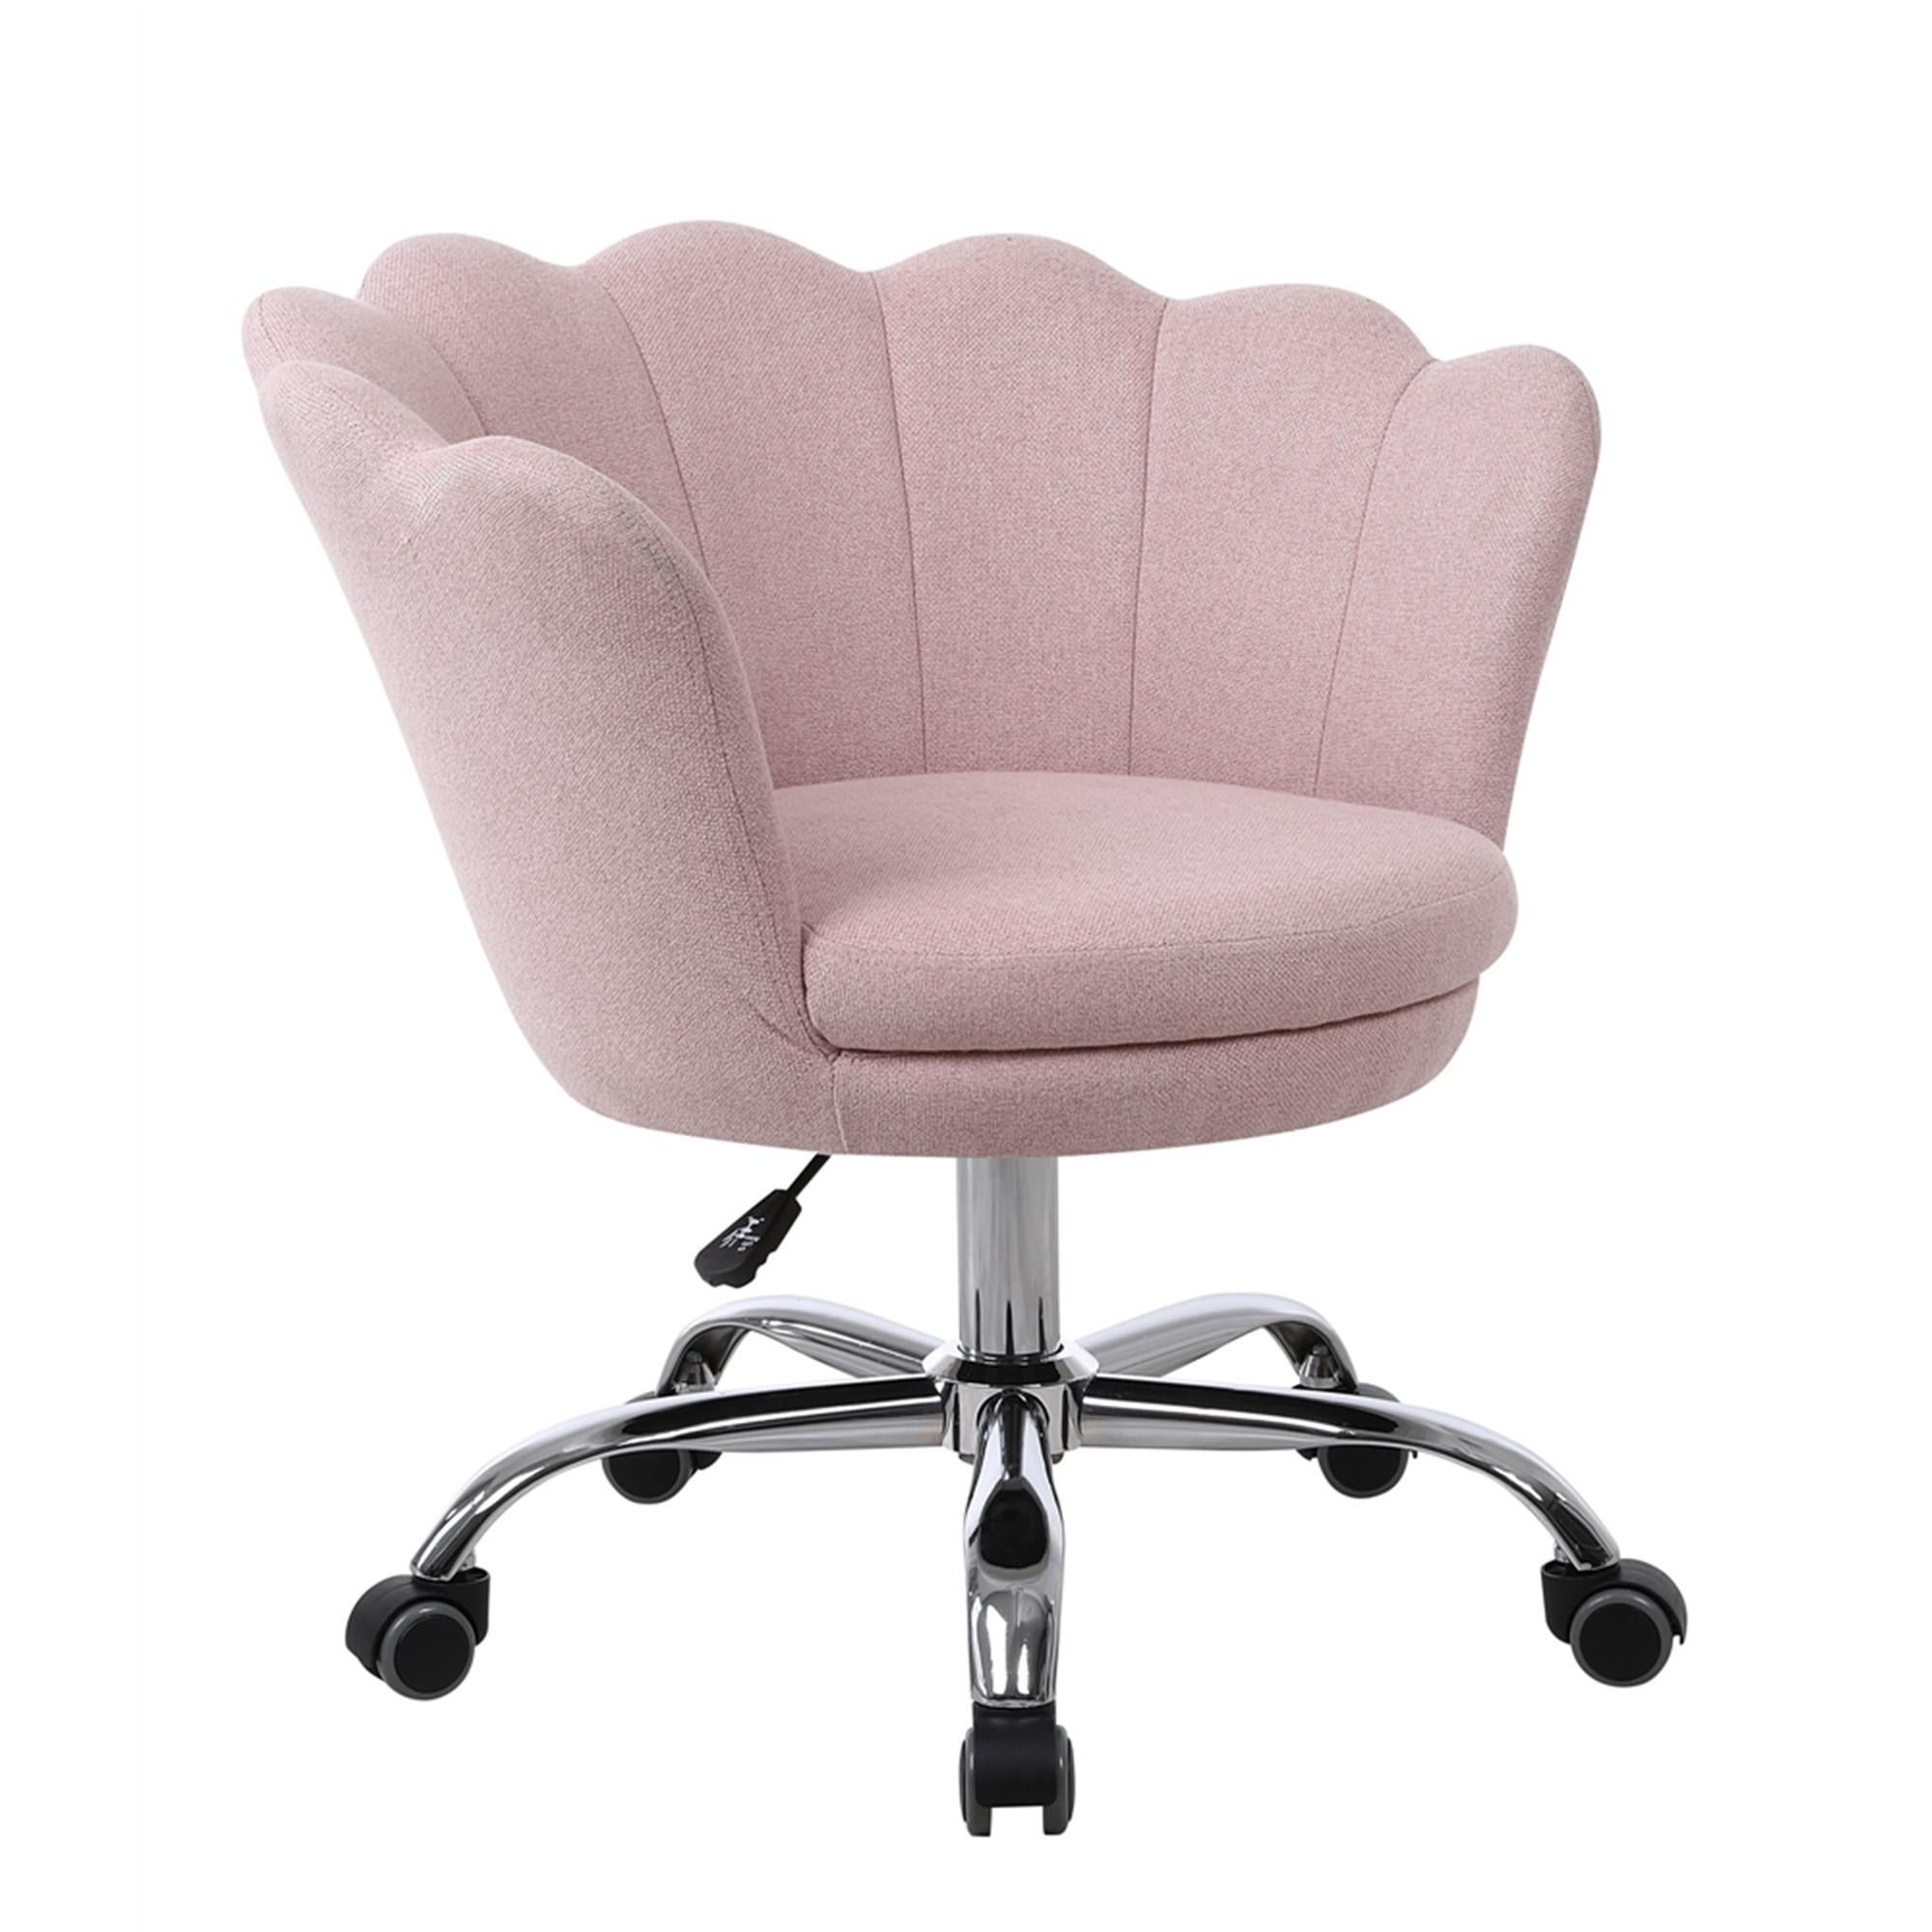 Image of: Modern Linen Fabric Office Chair Shell Chair Adjustable Swivel Comfy Upholstered Desk Chair Pink Matt Blatt